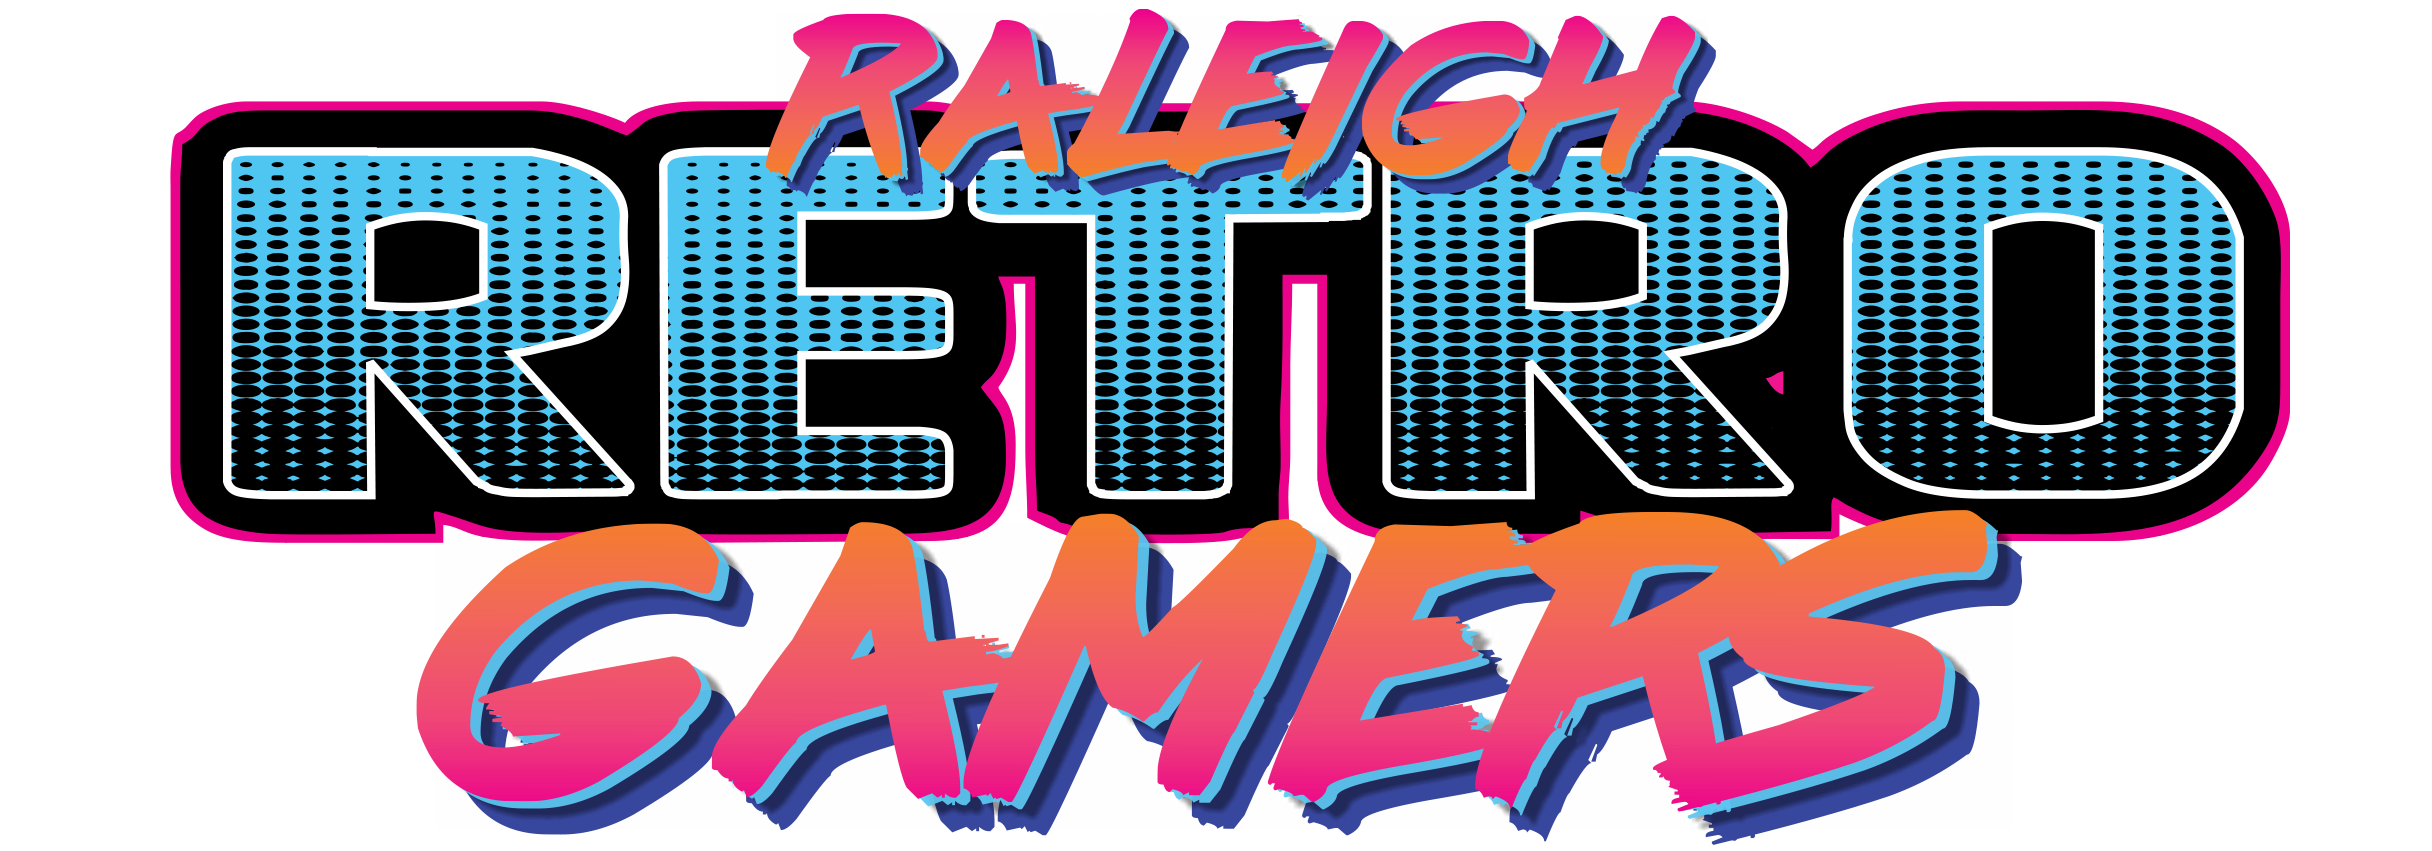 Raleigh Retro Gamers